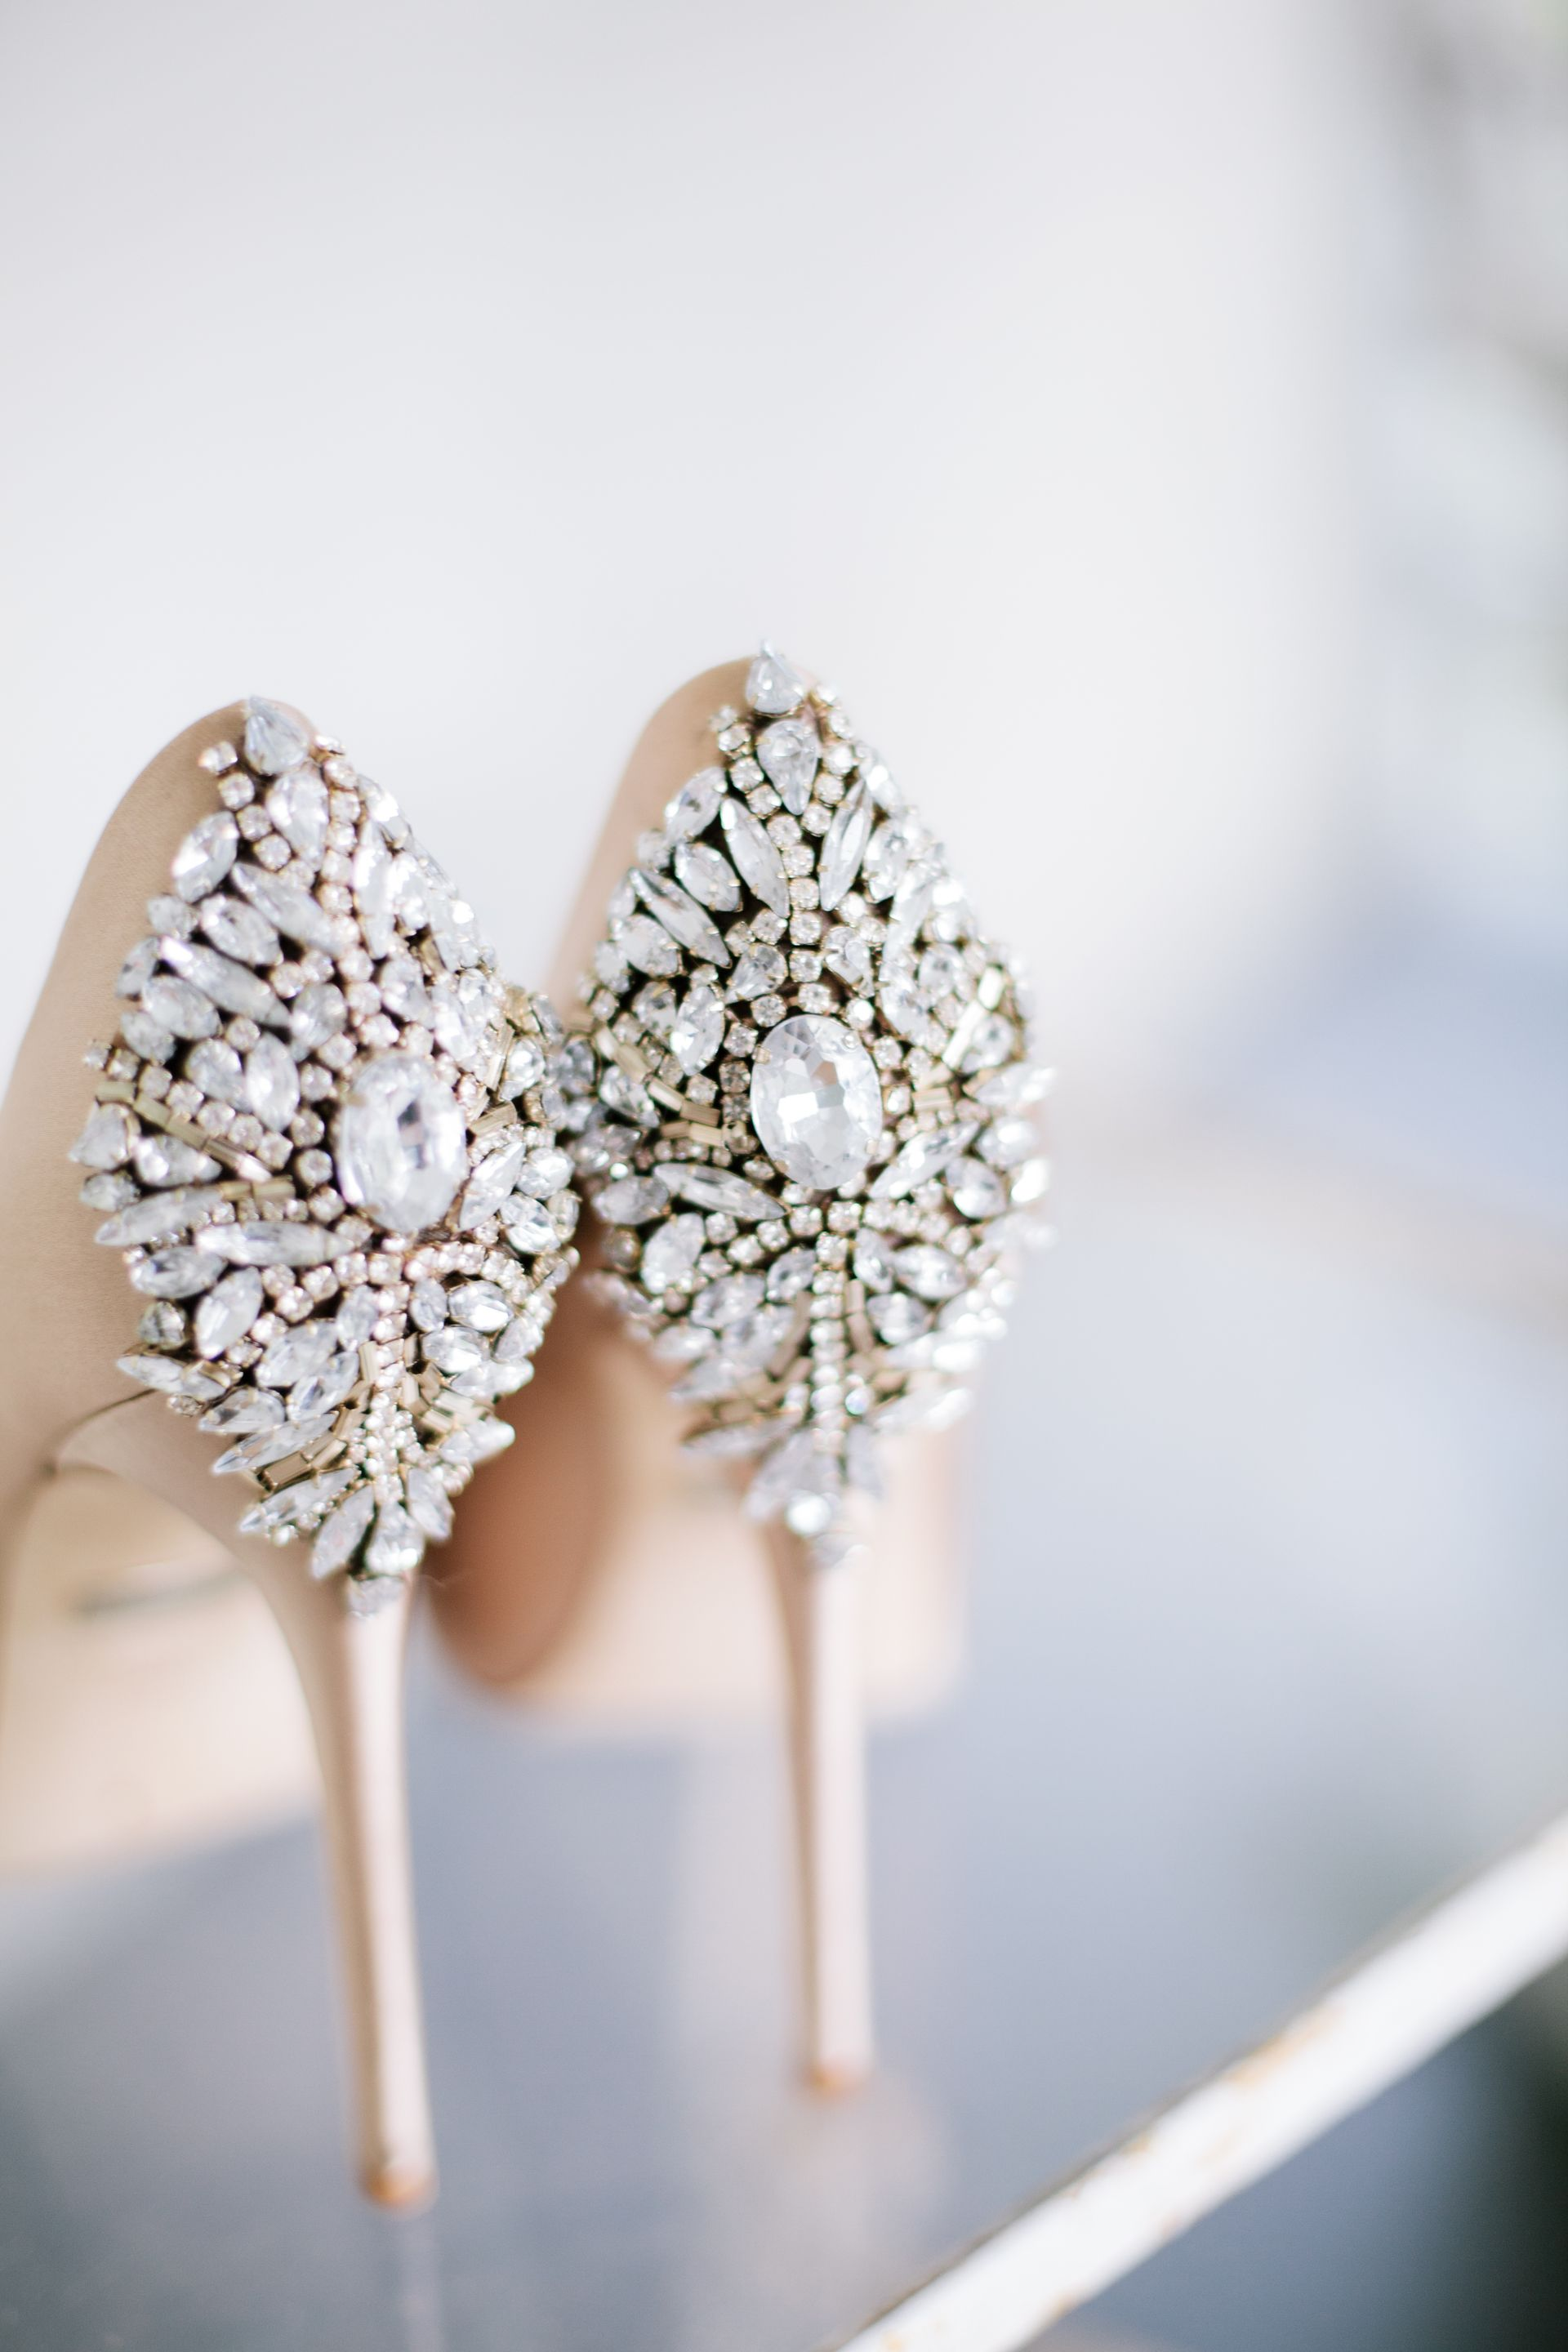 111b2442b88 Glam wedding shoes, jewel encrusted heels, bedazzled bridal shoes ...